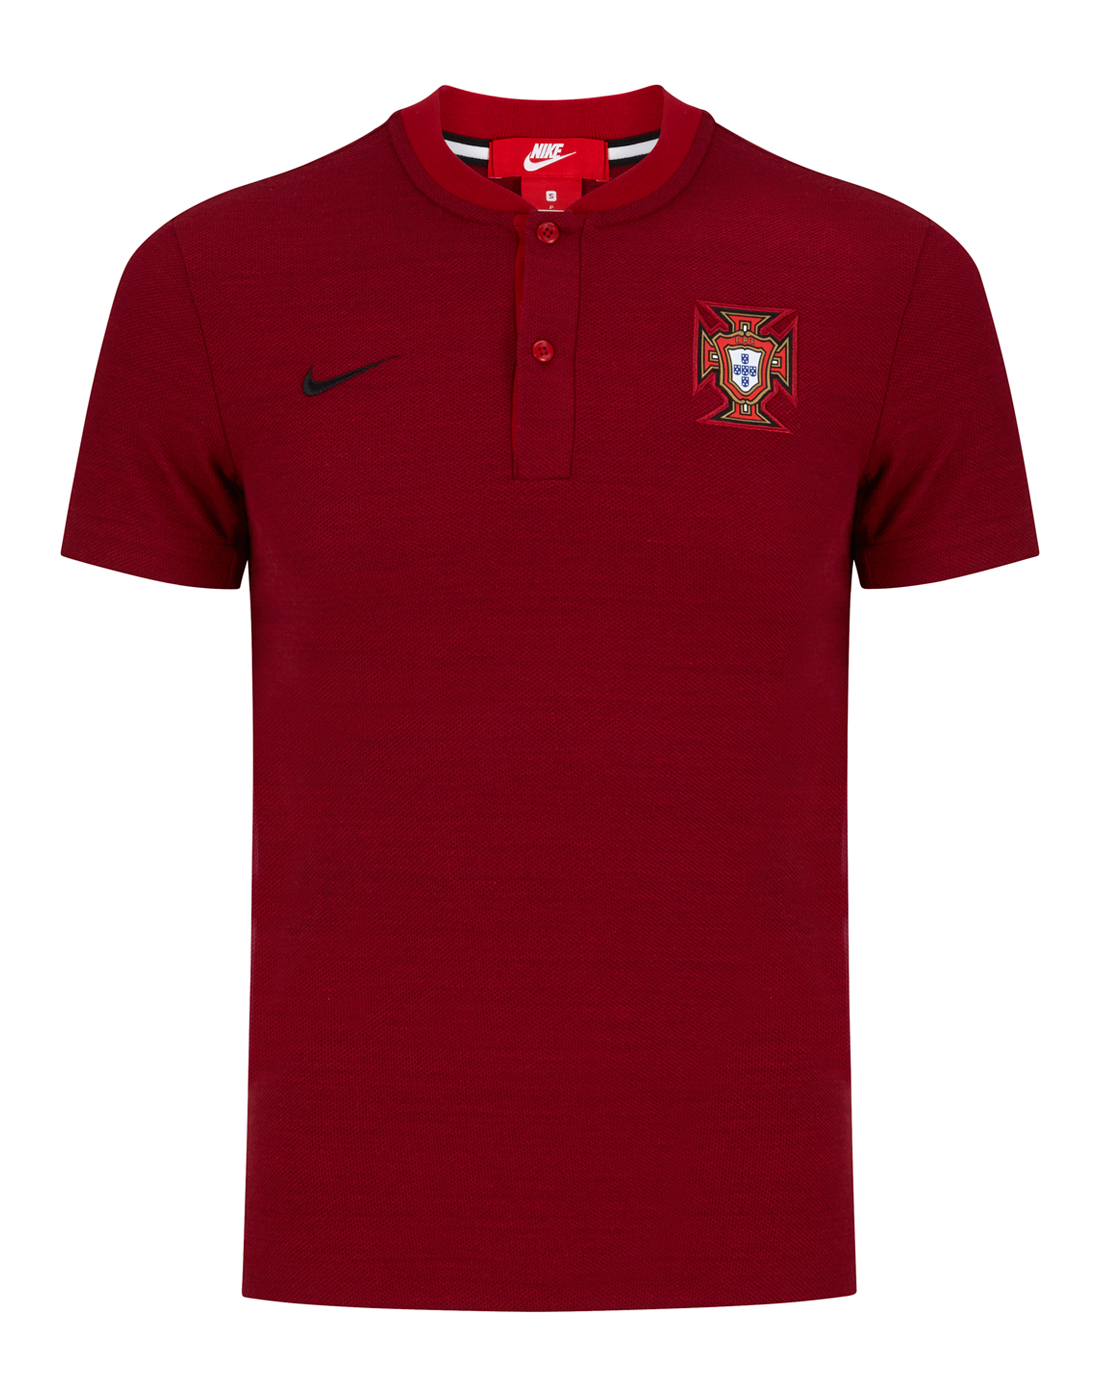 d9c406b6a84 Nike Adult Portugal Polo